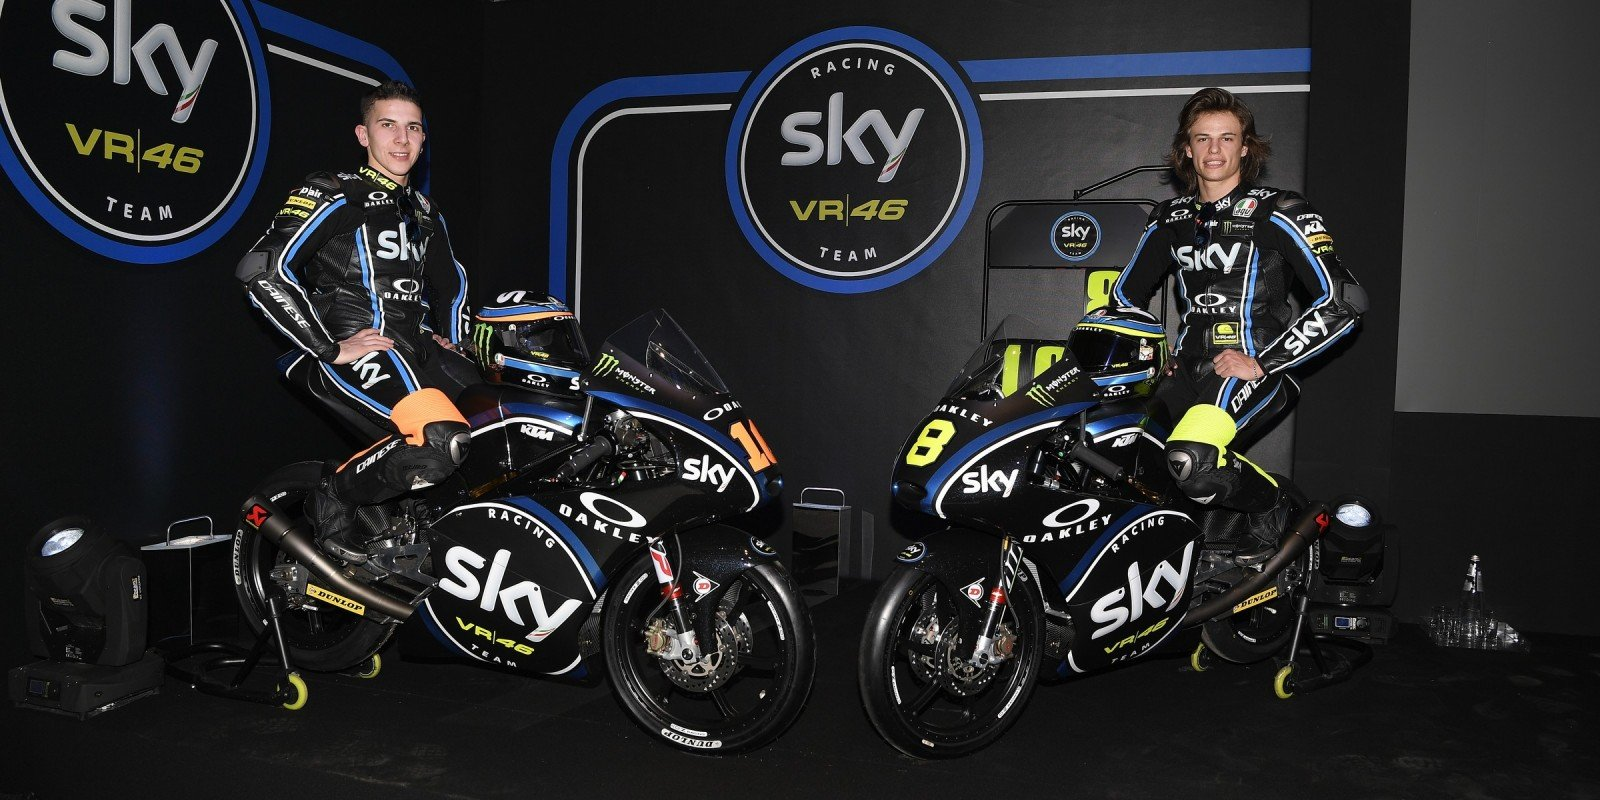 Migno and Bulega at the 2017 Sky Racing Team VR46 launch in Milan